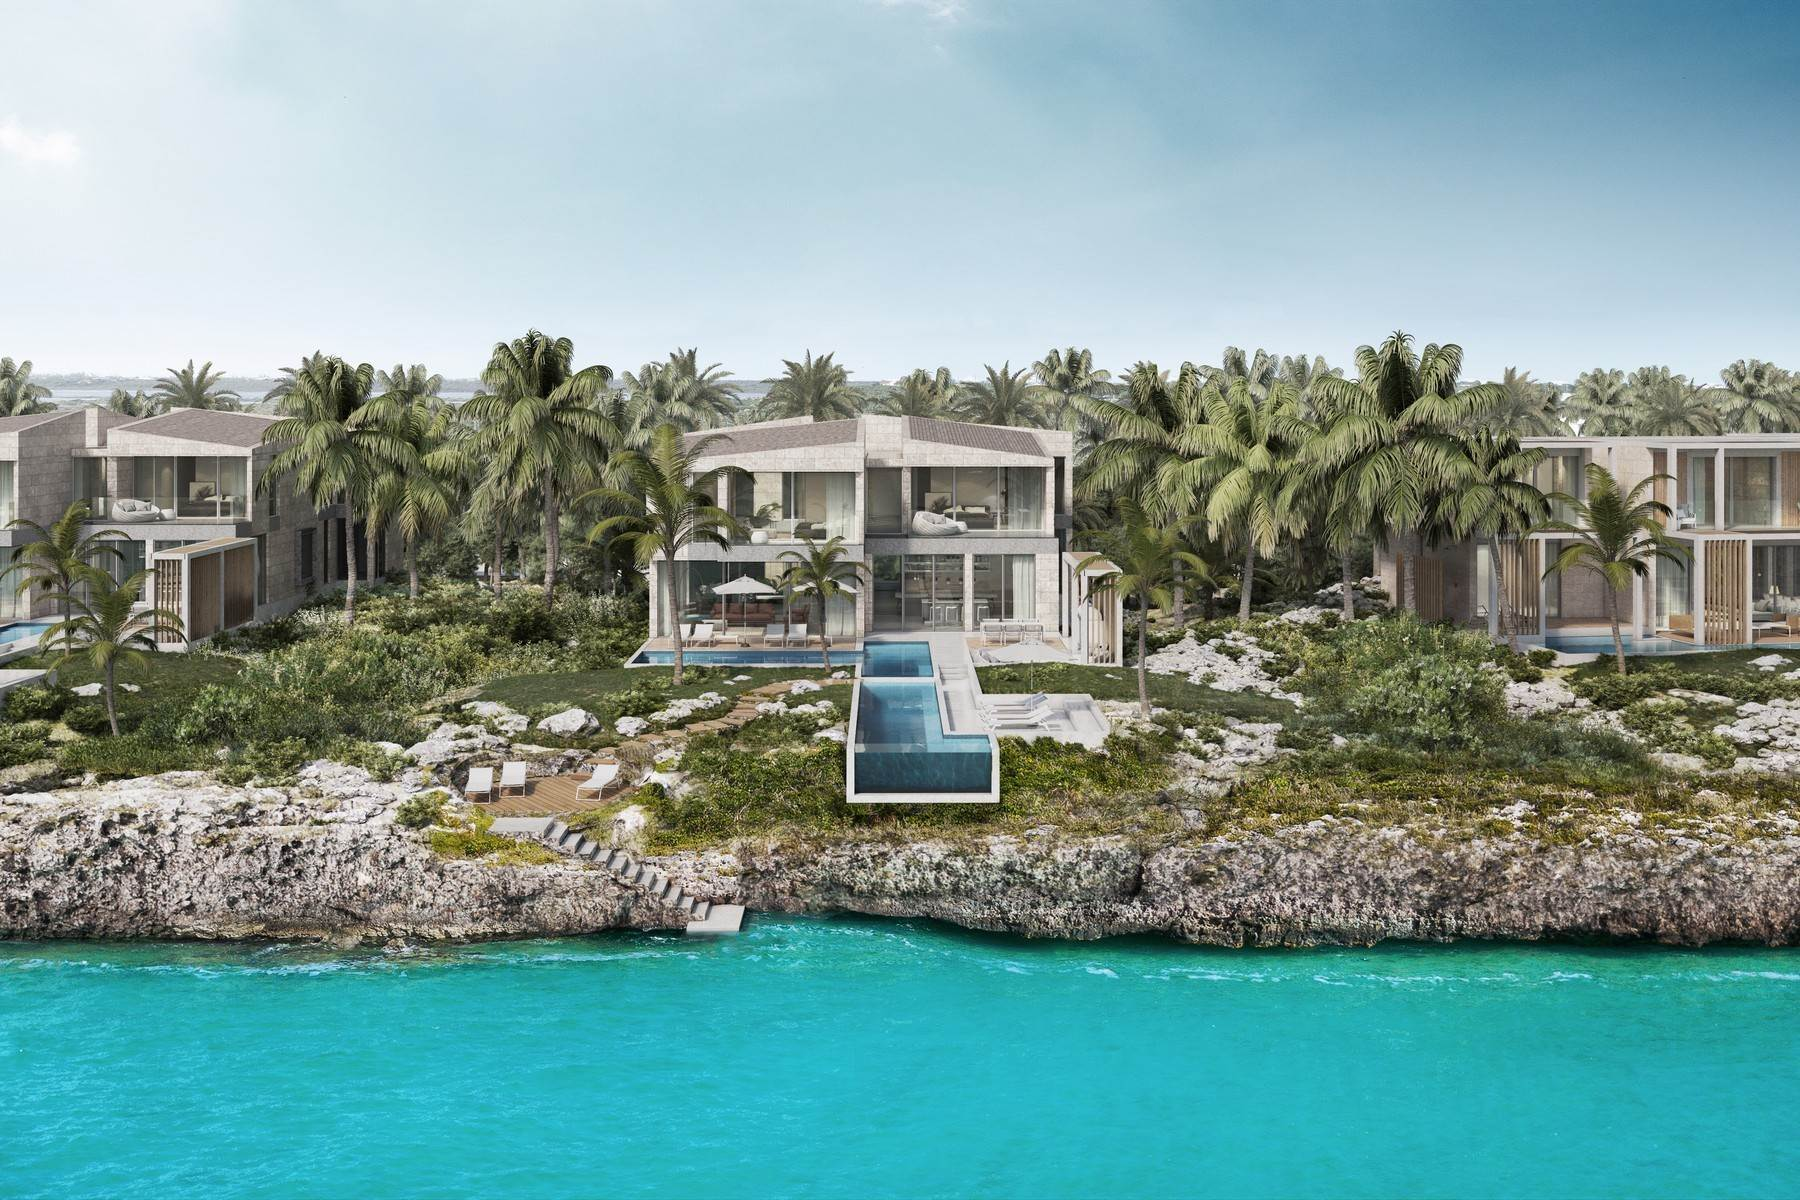 Single Family Homes for Sale at SOUTH BANK - THE OCEAN ESTATE I - SHOAL VILLA 6 South Bank, Long Bay, Providenciales Turks And Caicos Islands